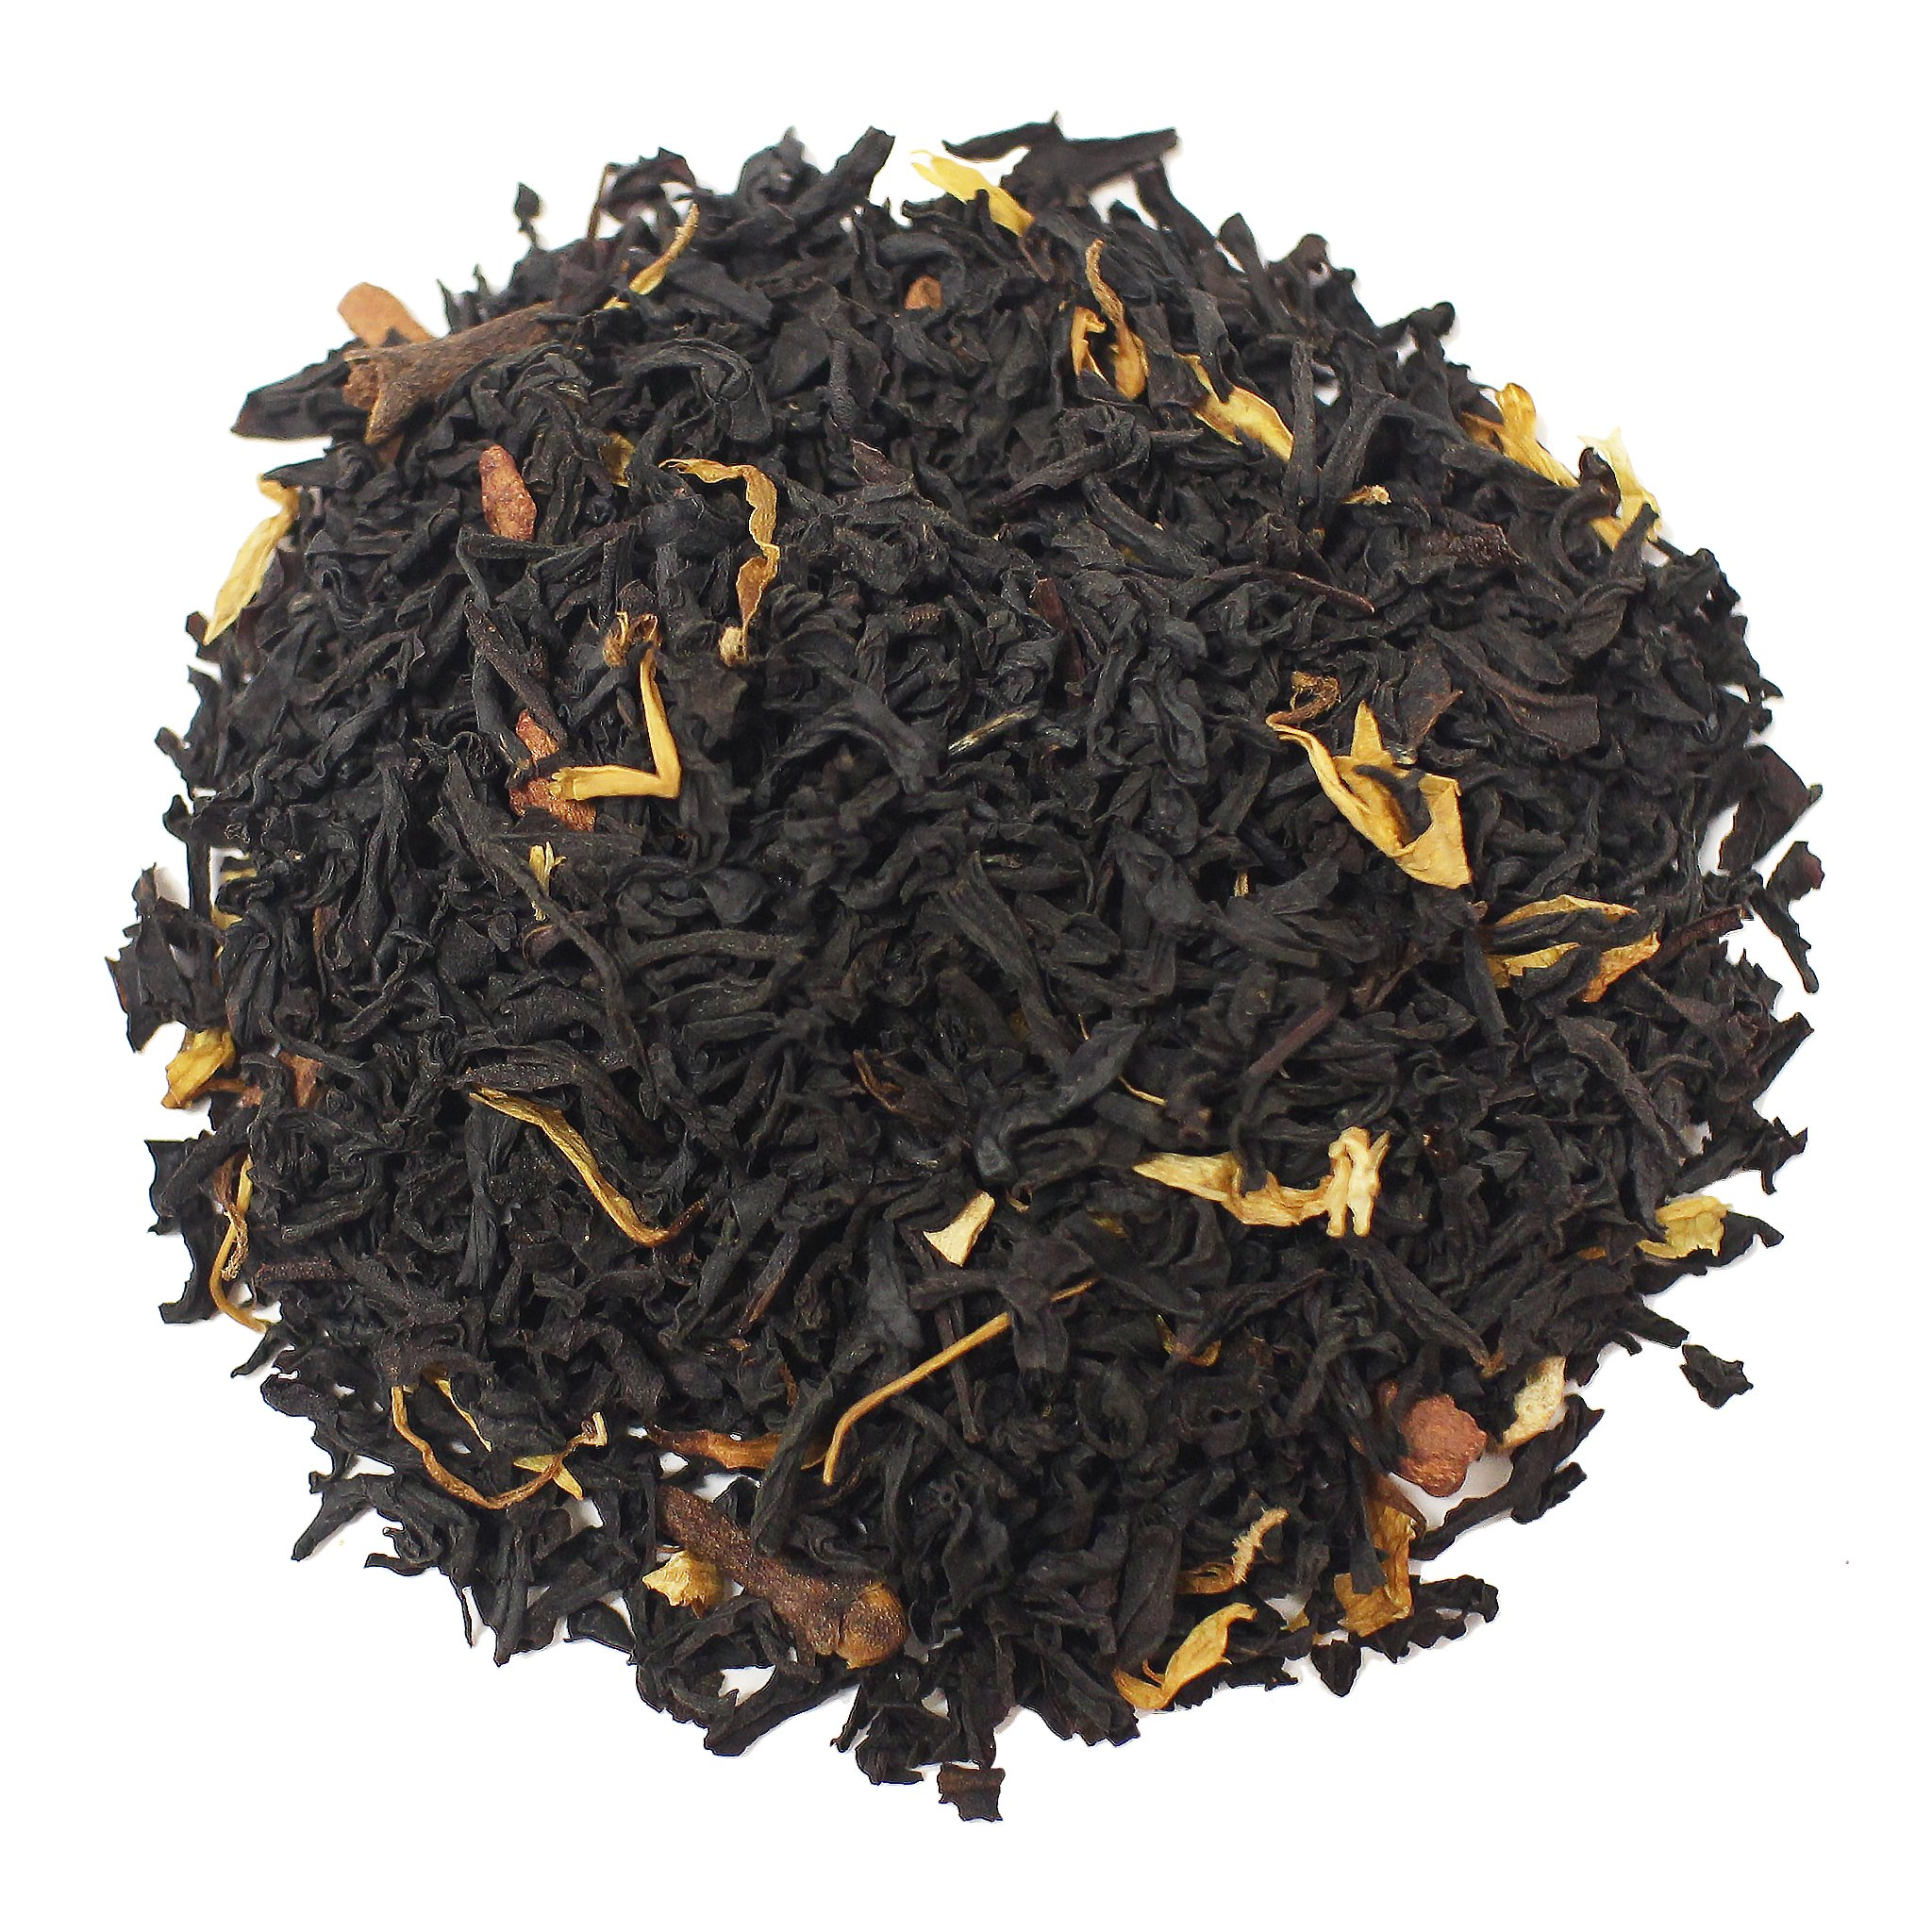 The Tea Farm - Pumpkin Spiced Black Holiday Tea - Loose Leaf Black Tea (16 Ounce Bag) by The Tea Farm